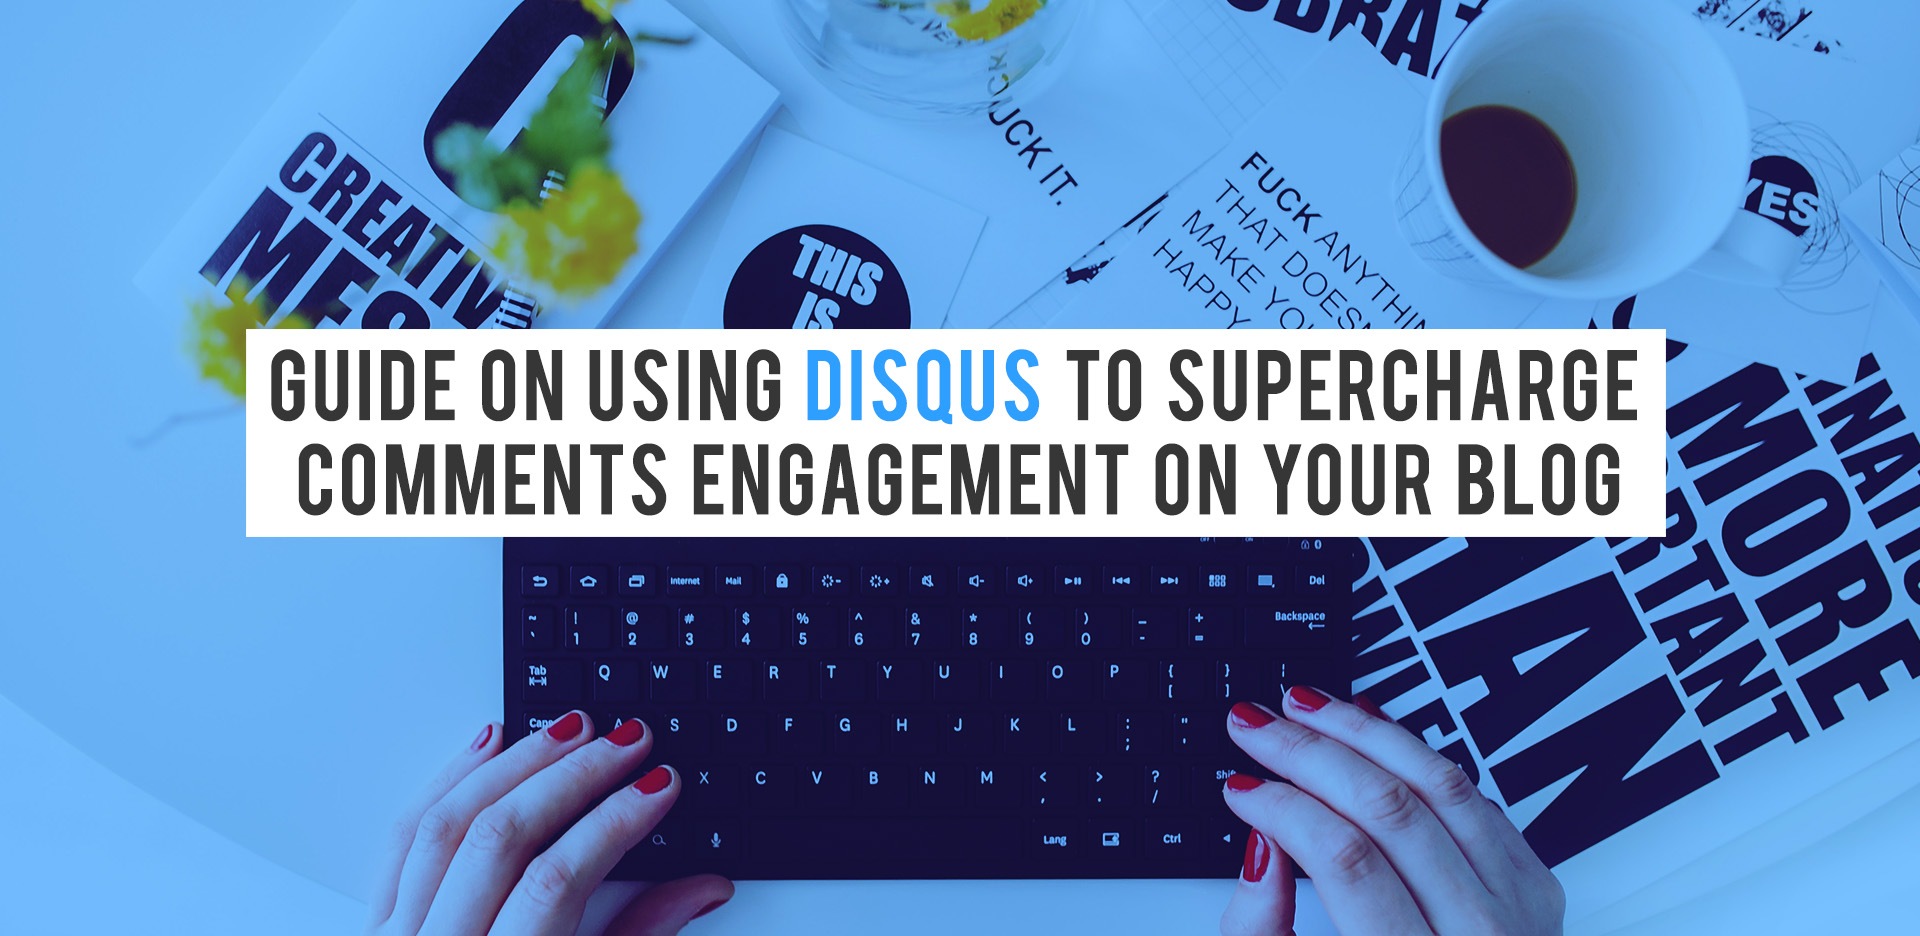 Guide on Using Disqus to Supercharge Comments Engagement on your Blog